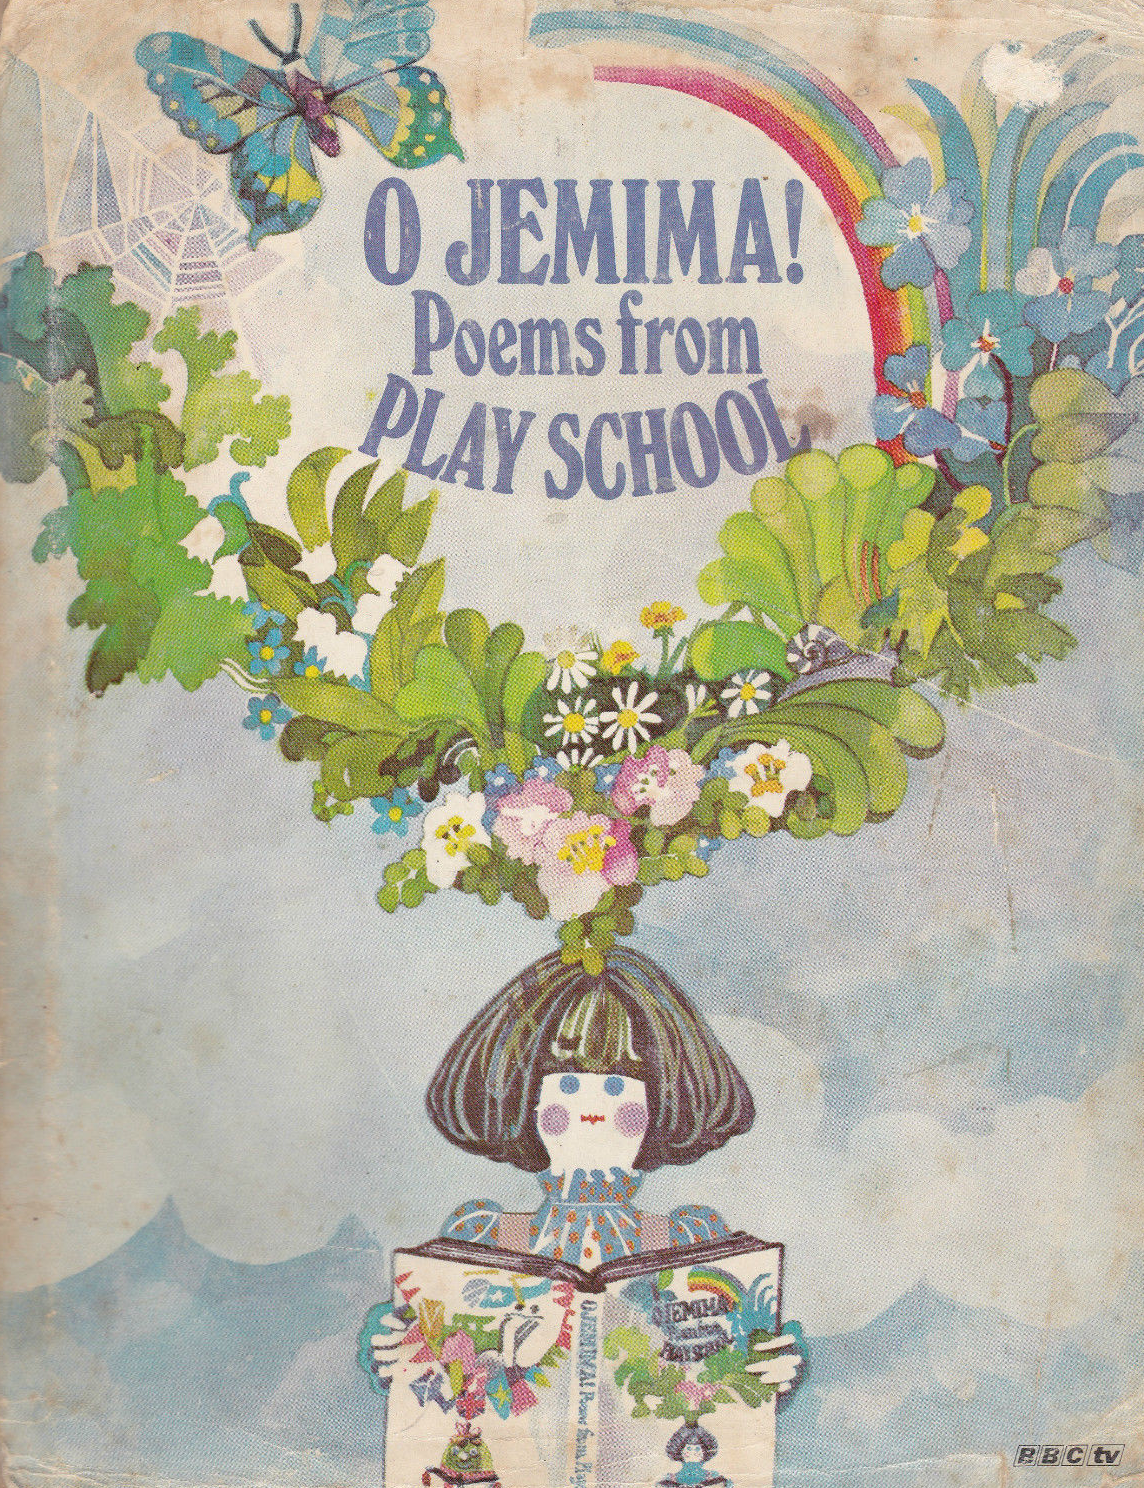 O Jemima! Poems From Play School (BBC Books, 1970).